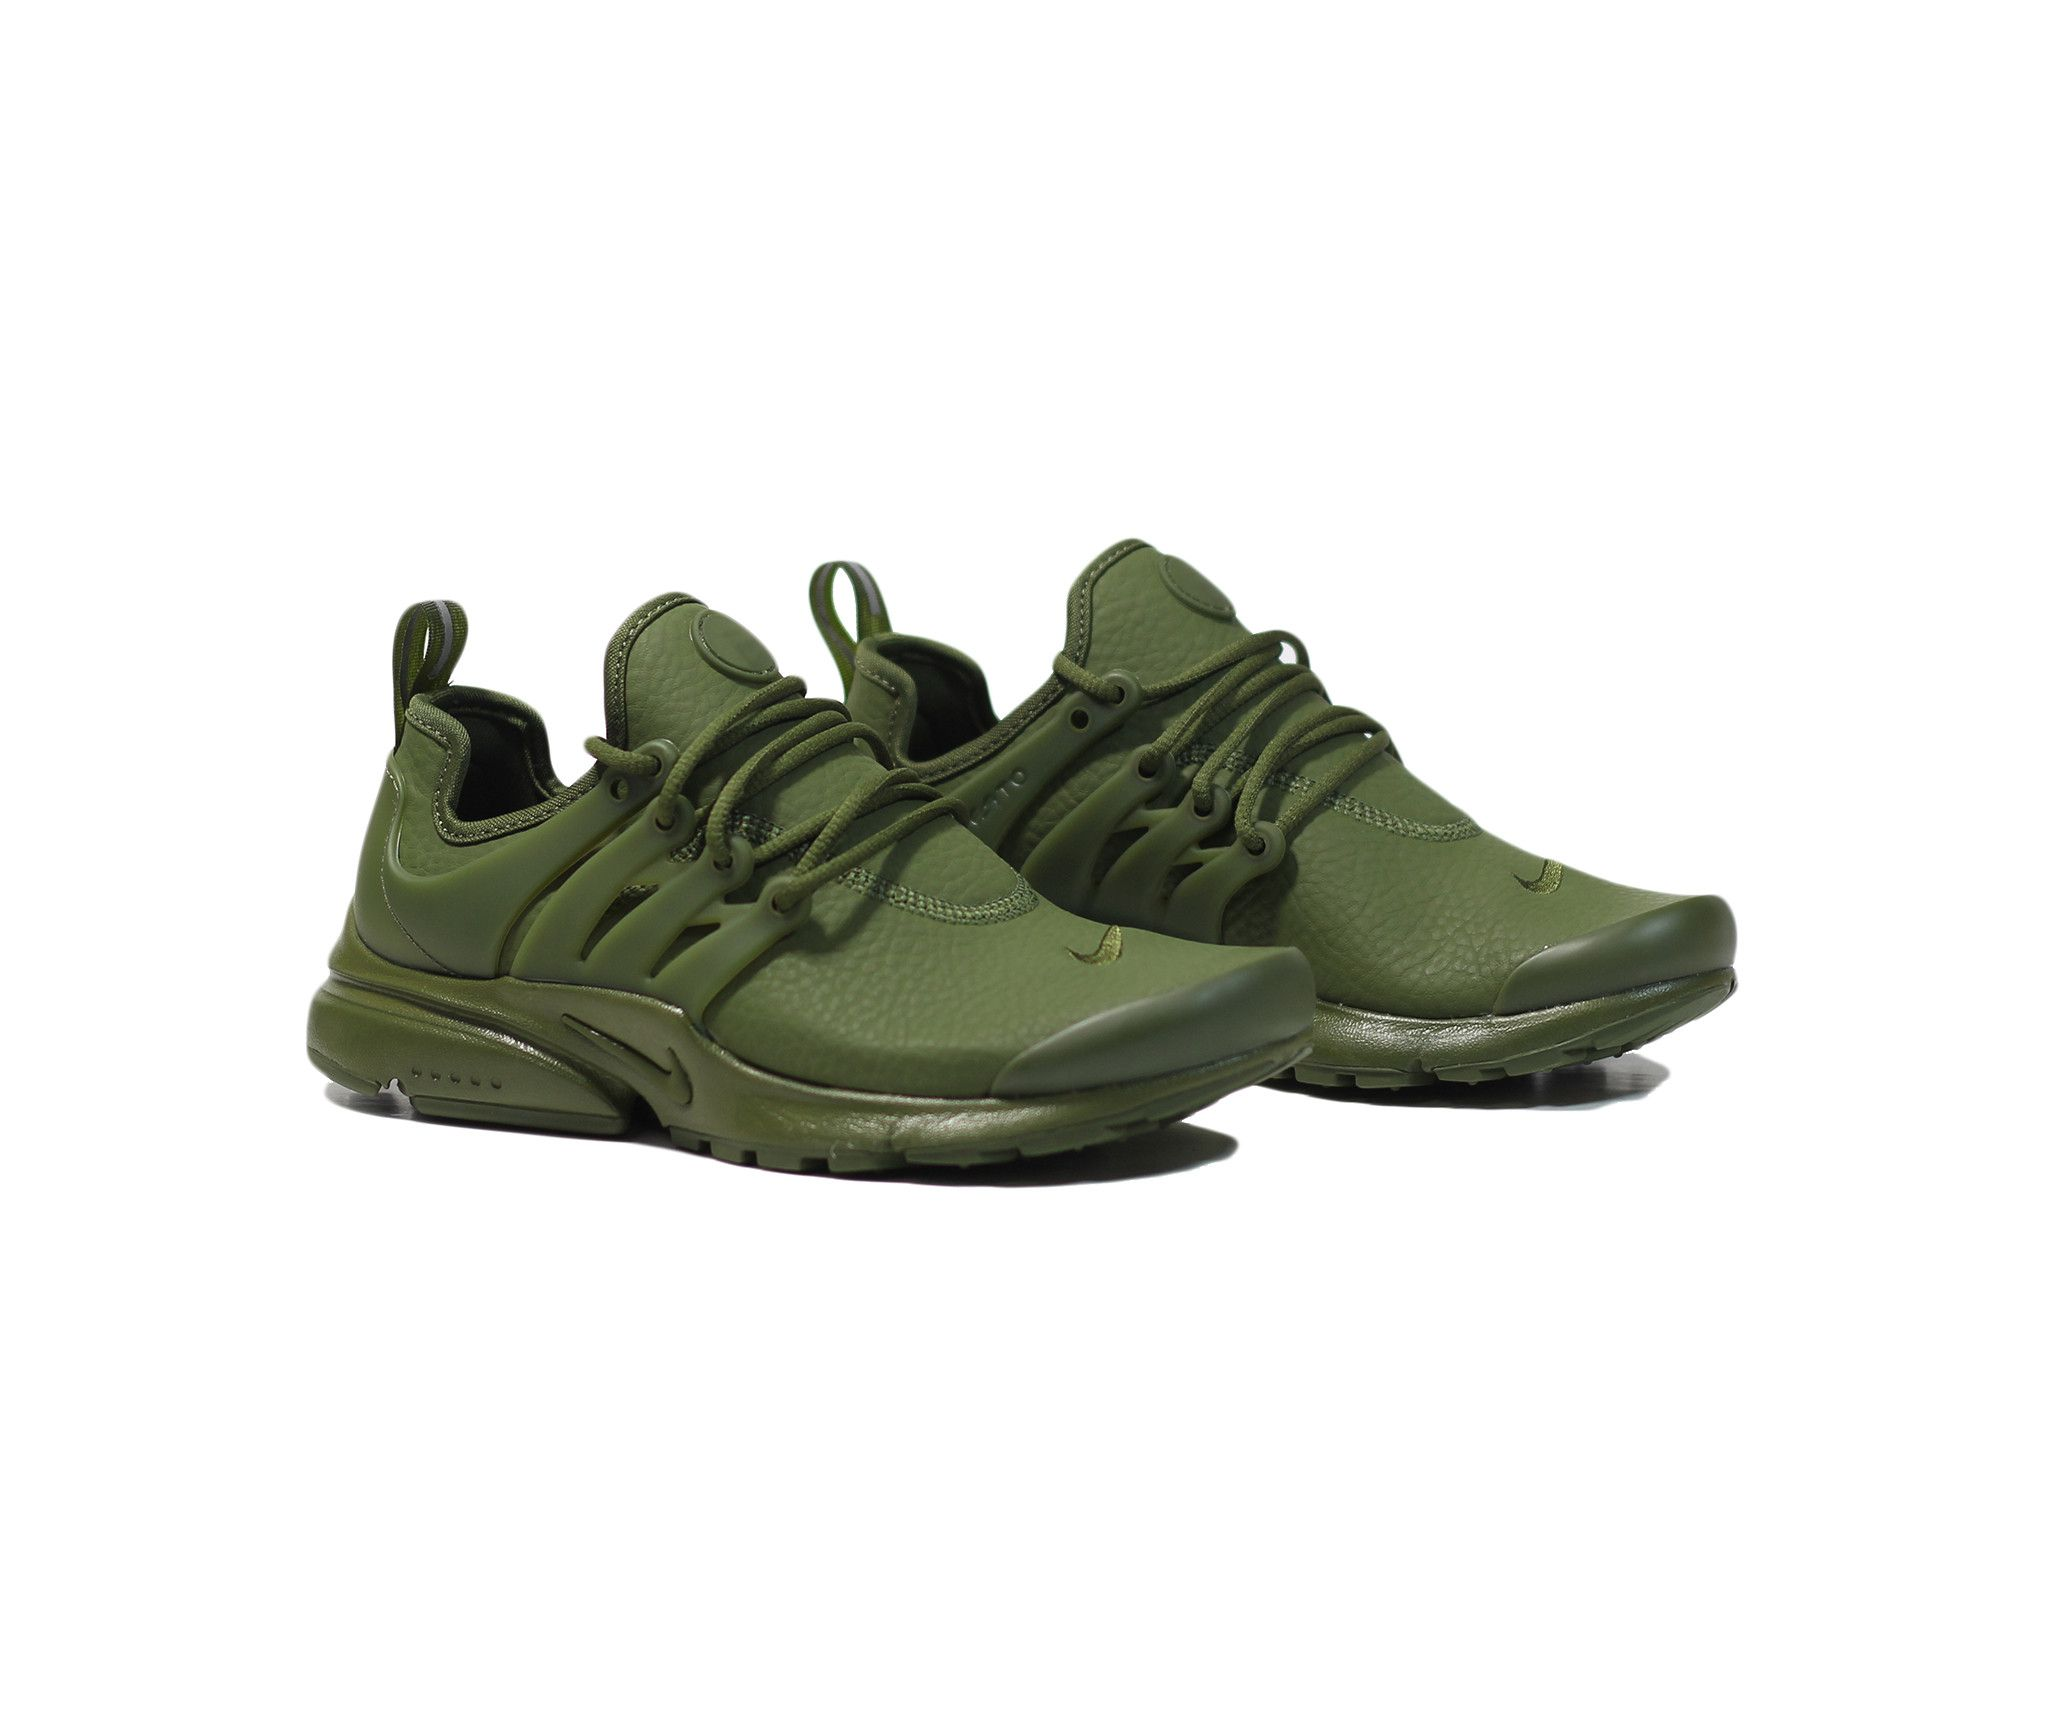 new products 6855e a7dd3 Nike Women's Air Presto PRM - Legion Green/Black | sneakers ...